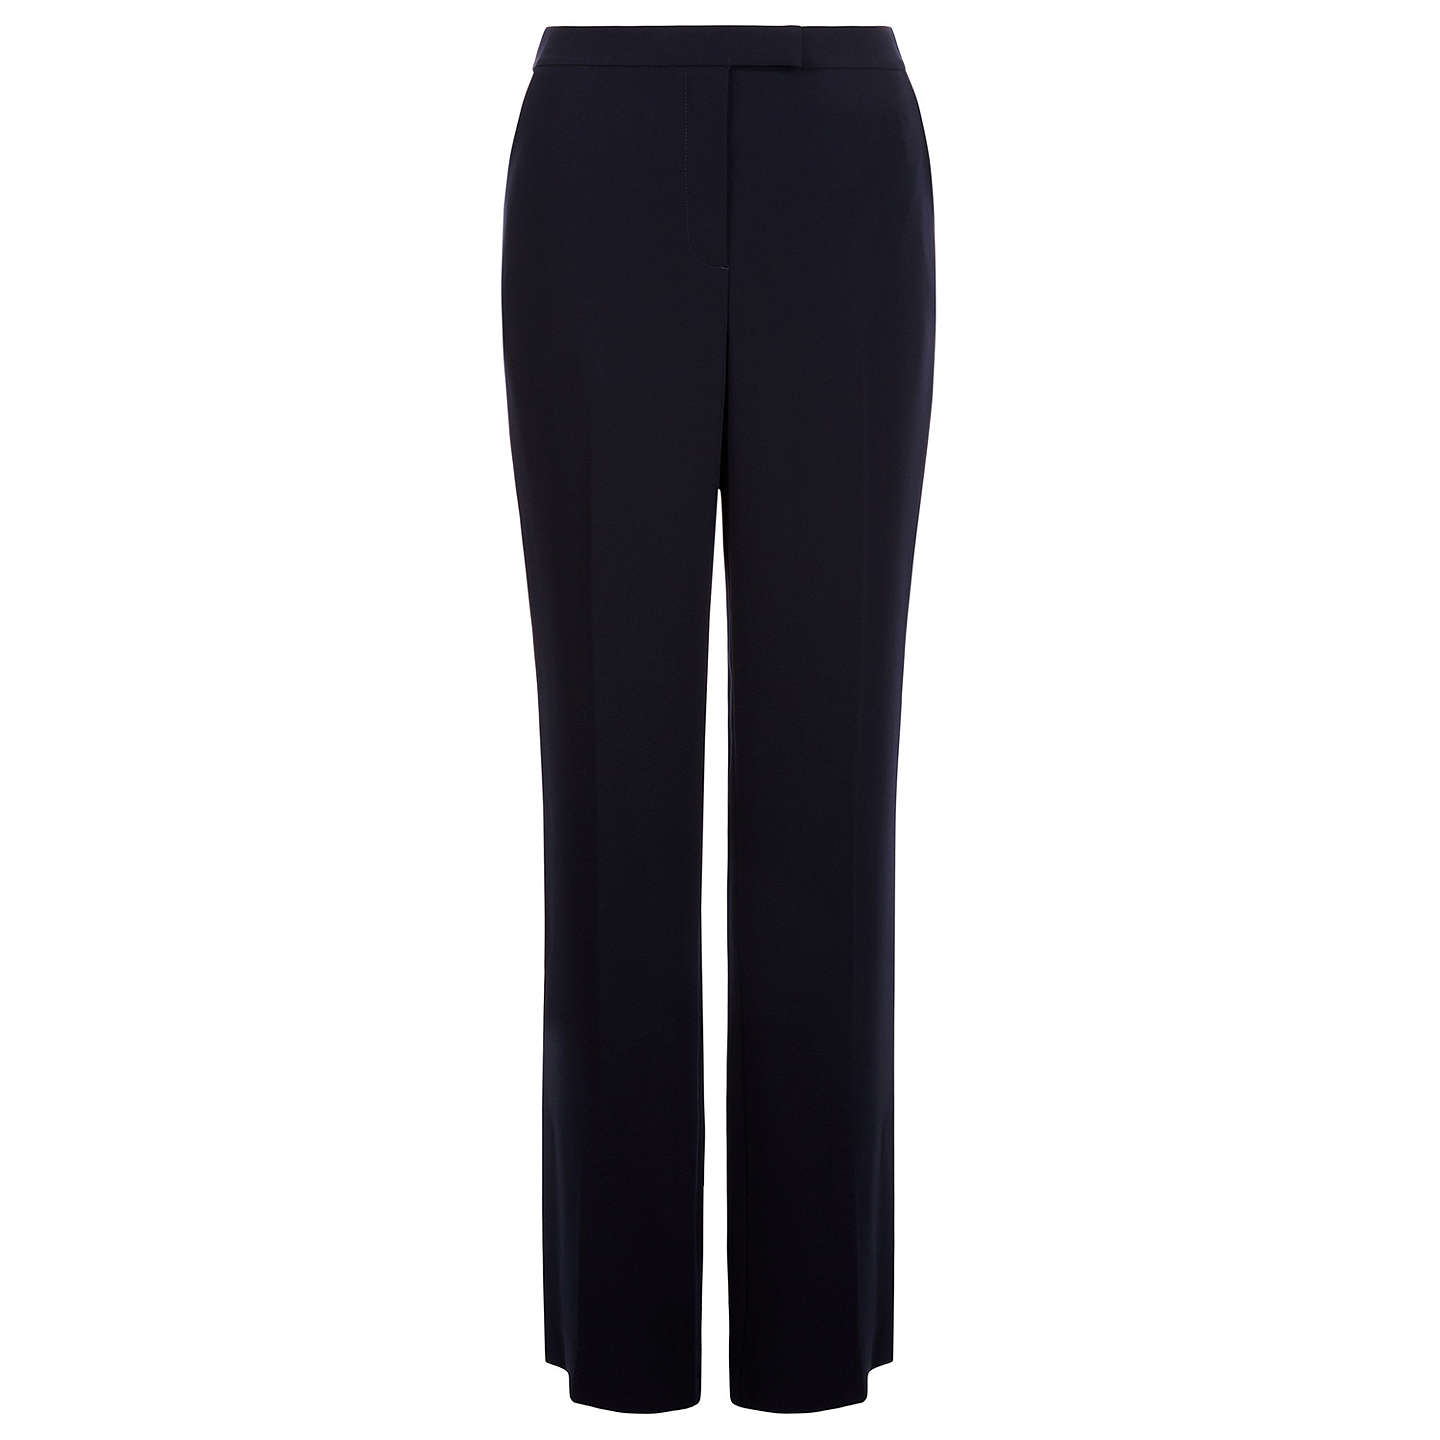 BuyHobbs Catherine Trousers, Navy, 8 Online at johnlewis.com